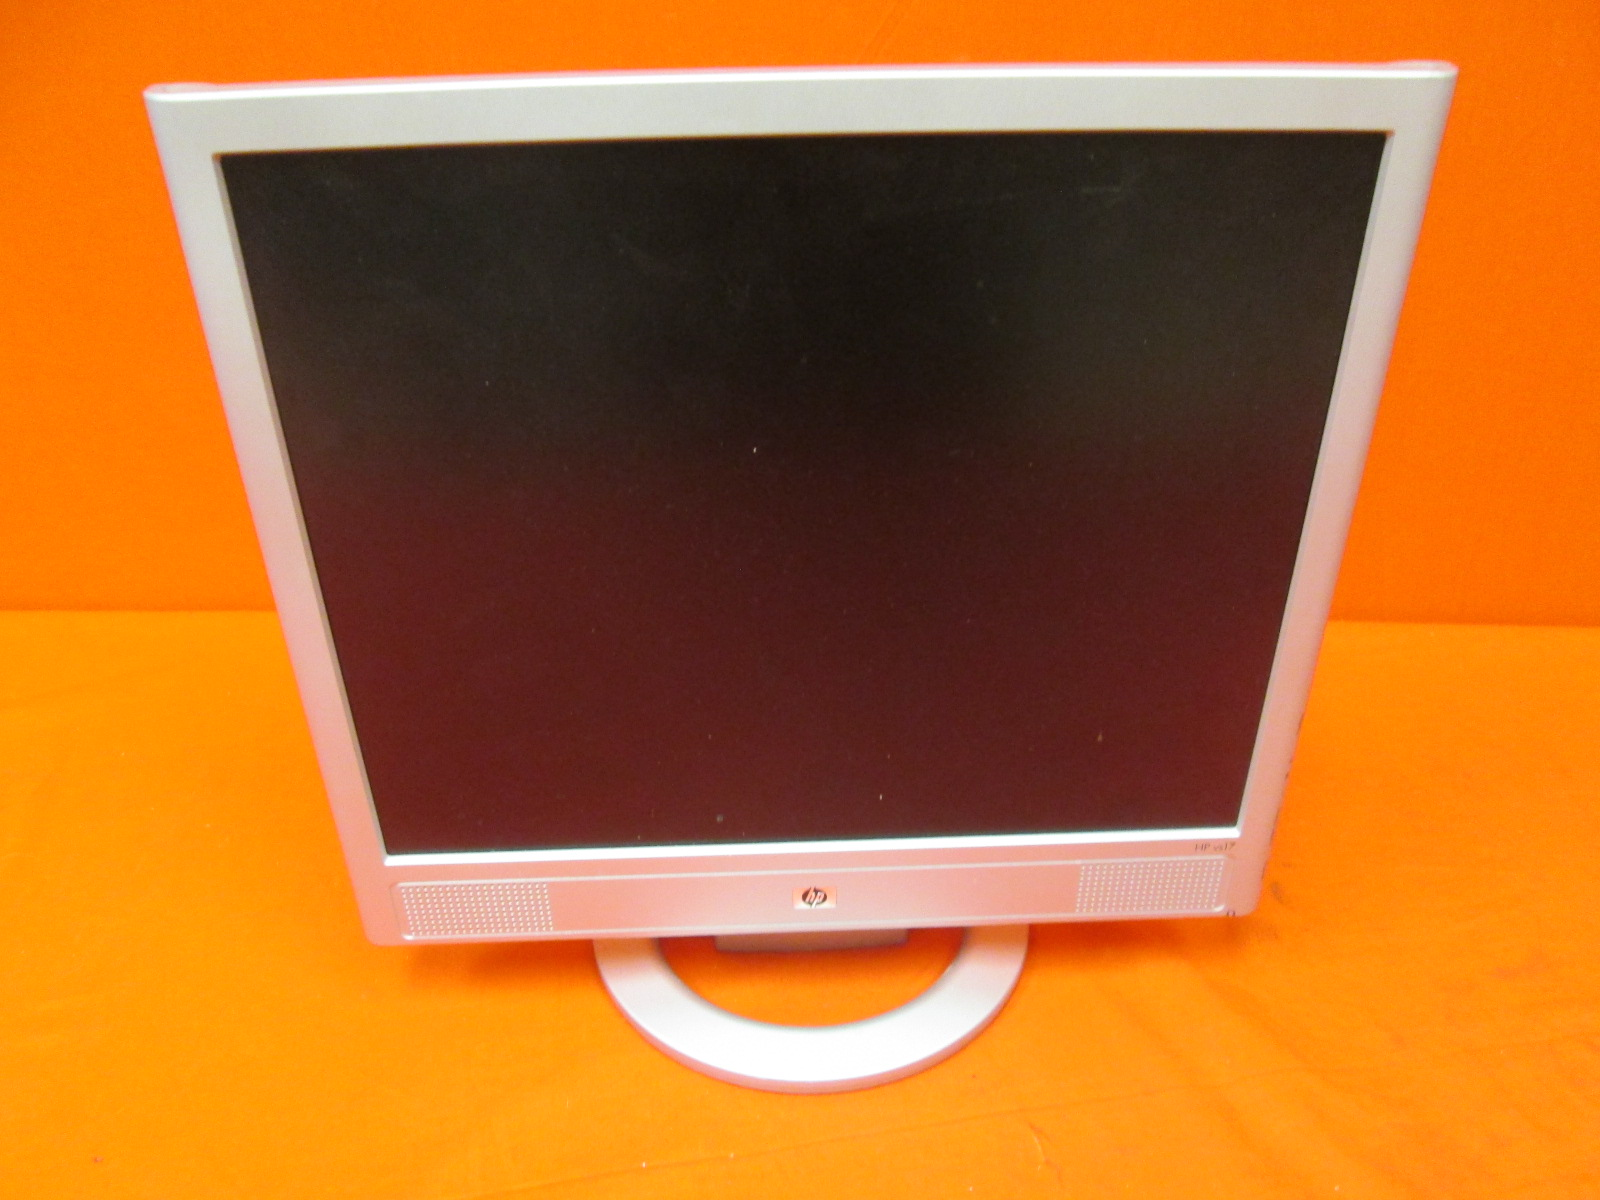 HP HSTND-2F01 17 Inch LCD Monitor